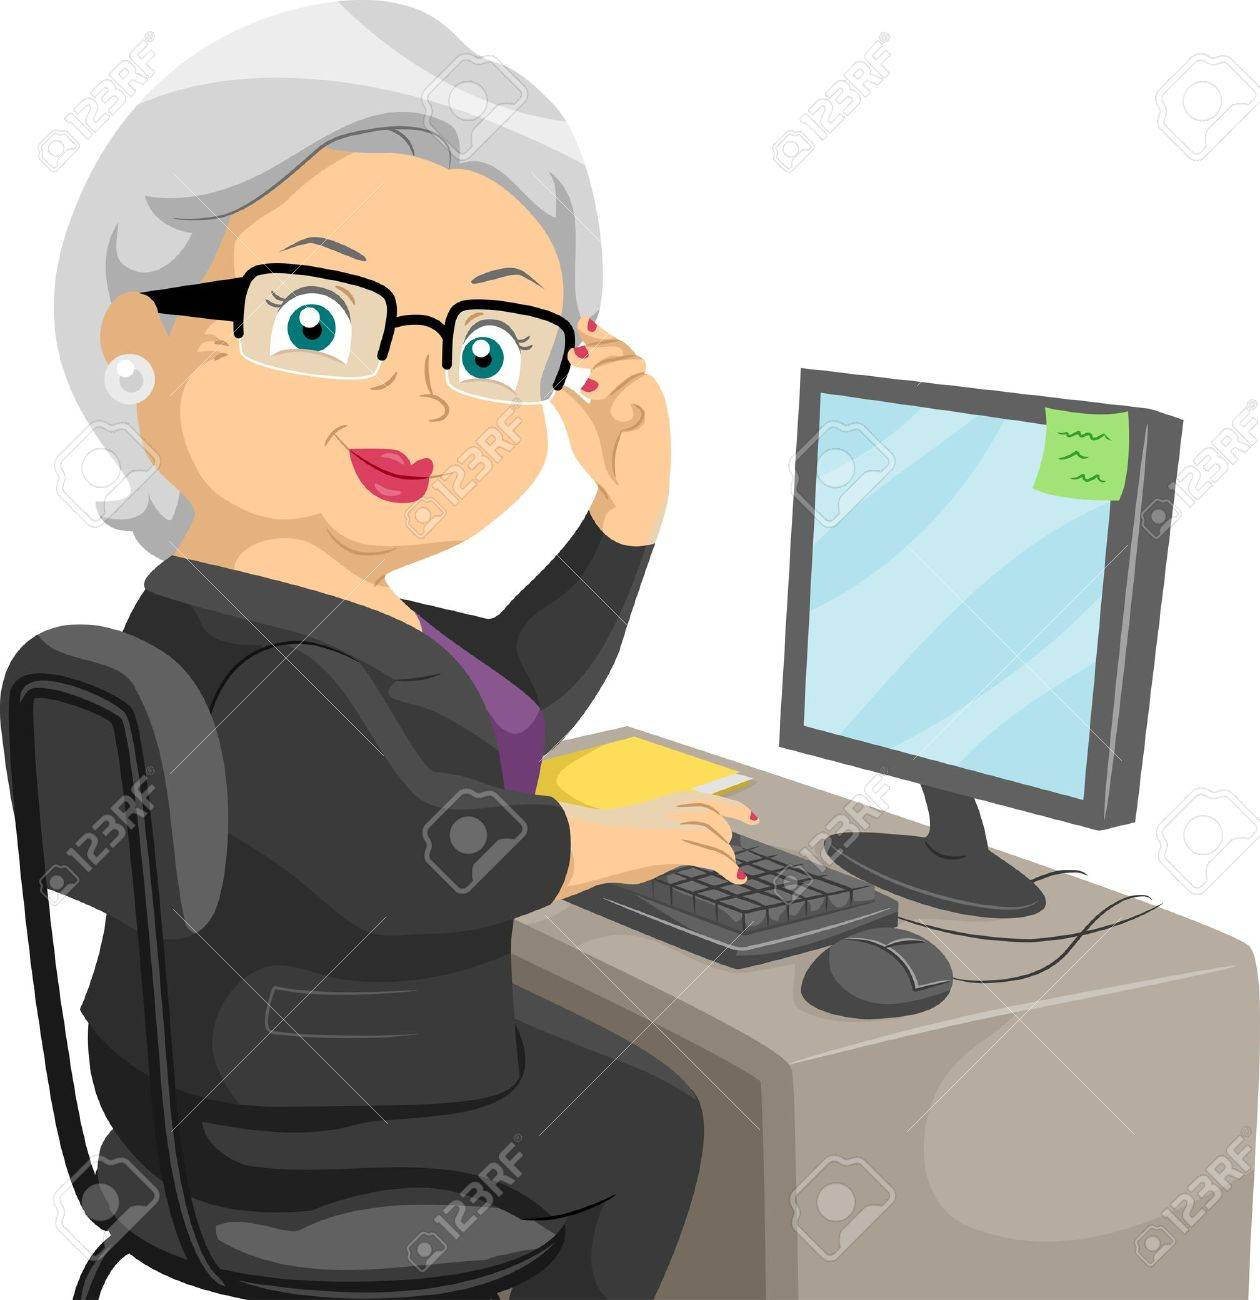 Illustration Featuring an Elderly Woman Using a Computer Stock Illustration - 14493512